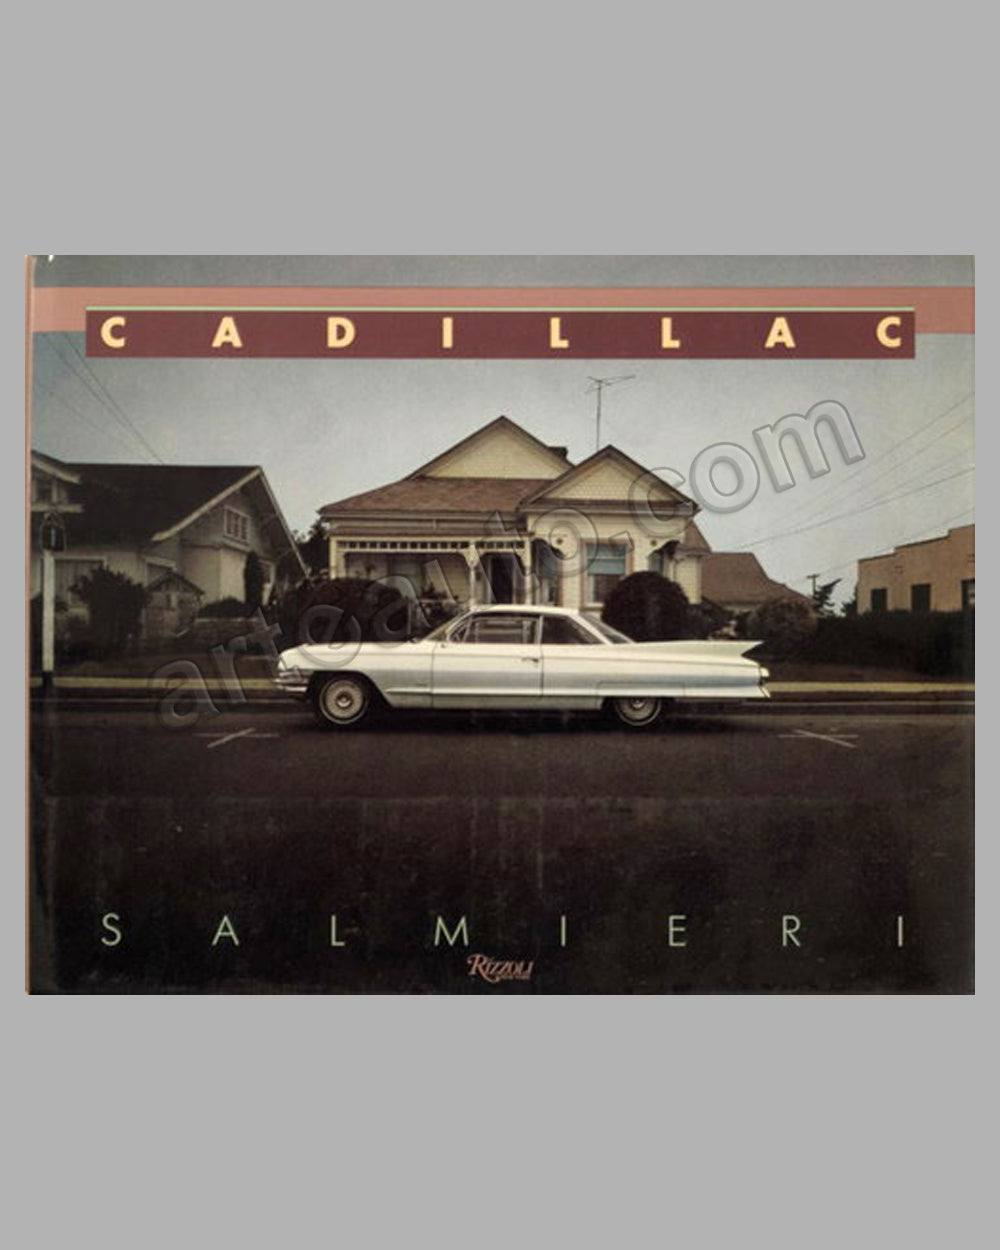 Cadillac book by S. Salmieri and O. Edwards, 1st ed., 1985